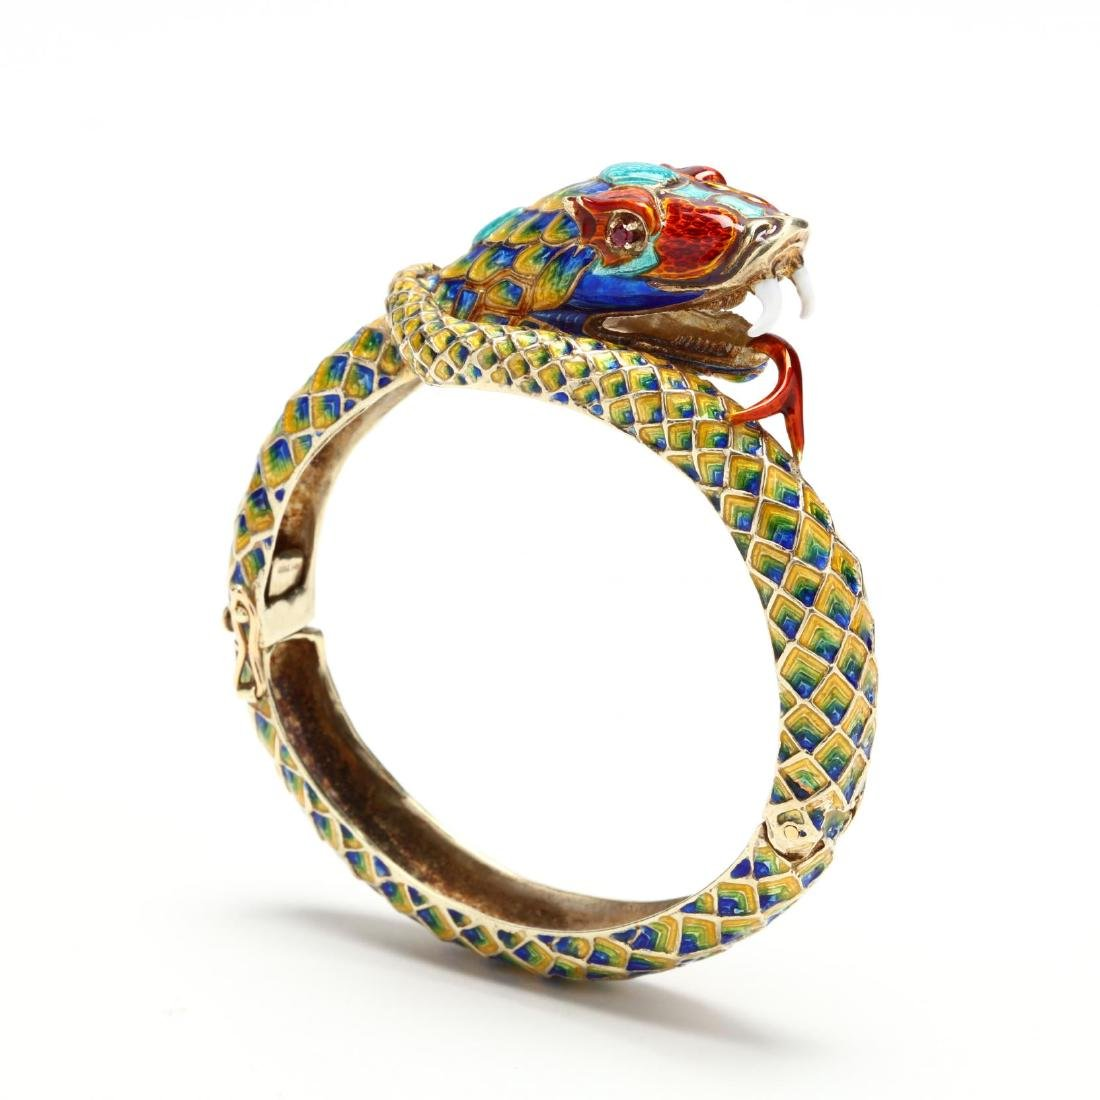 14KT Gold Enamel Snake Bangle Bracelet, Rine